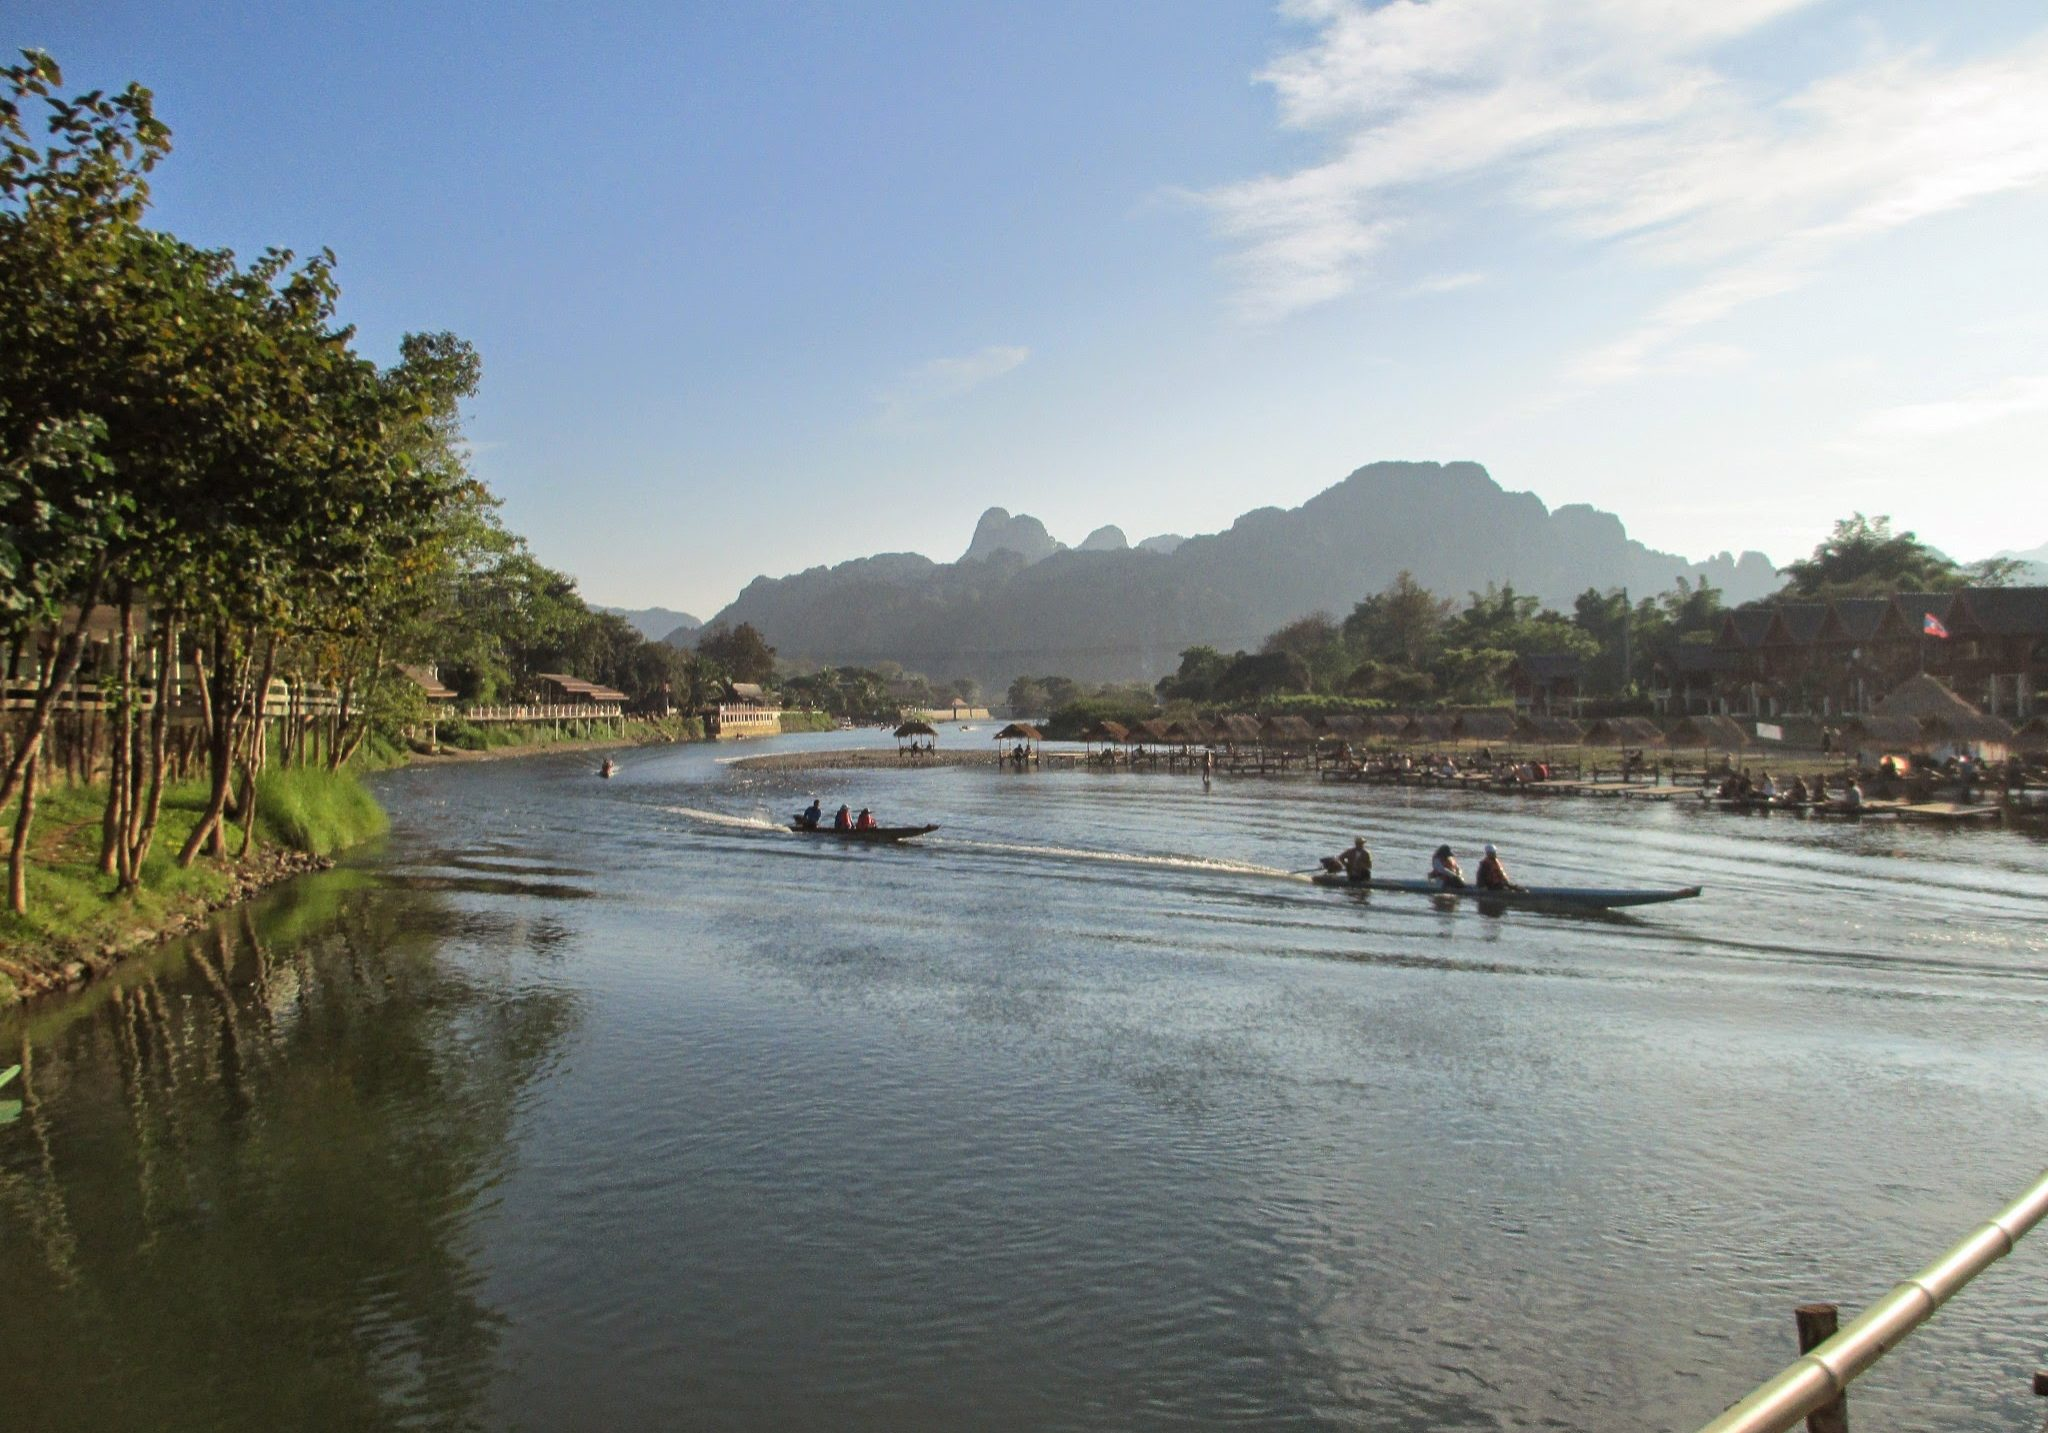 Vang Vieng, river, laos, mountains, forest, boats, sunset, asia, south east asia, travels, travelling, backpacking,